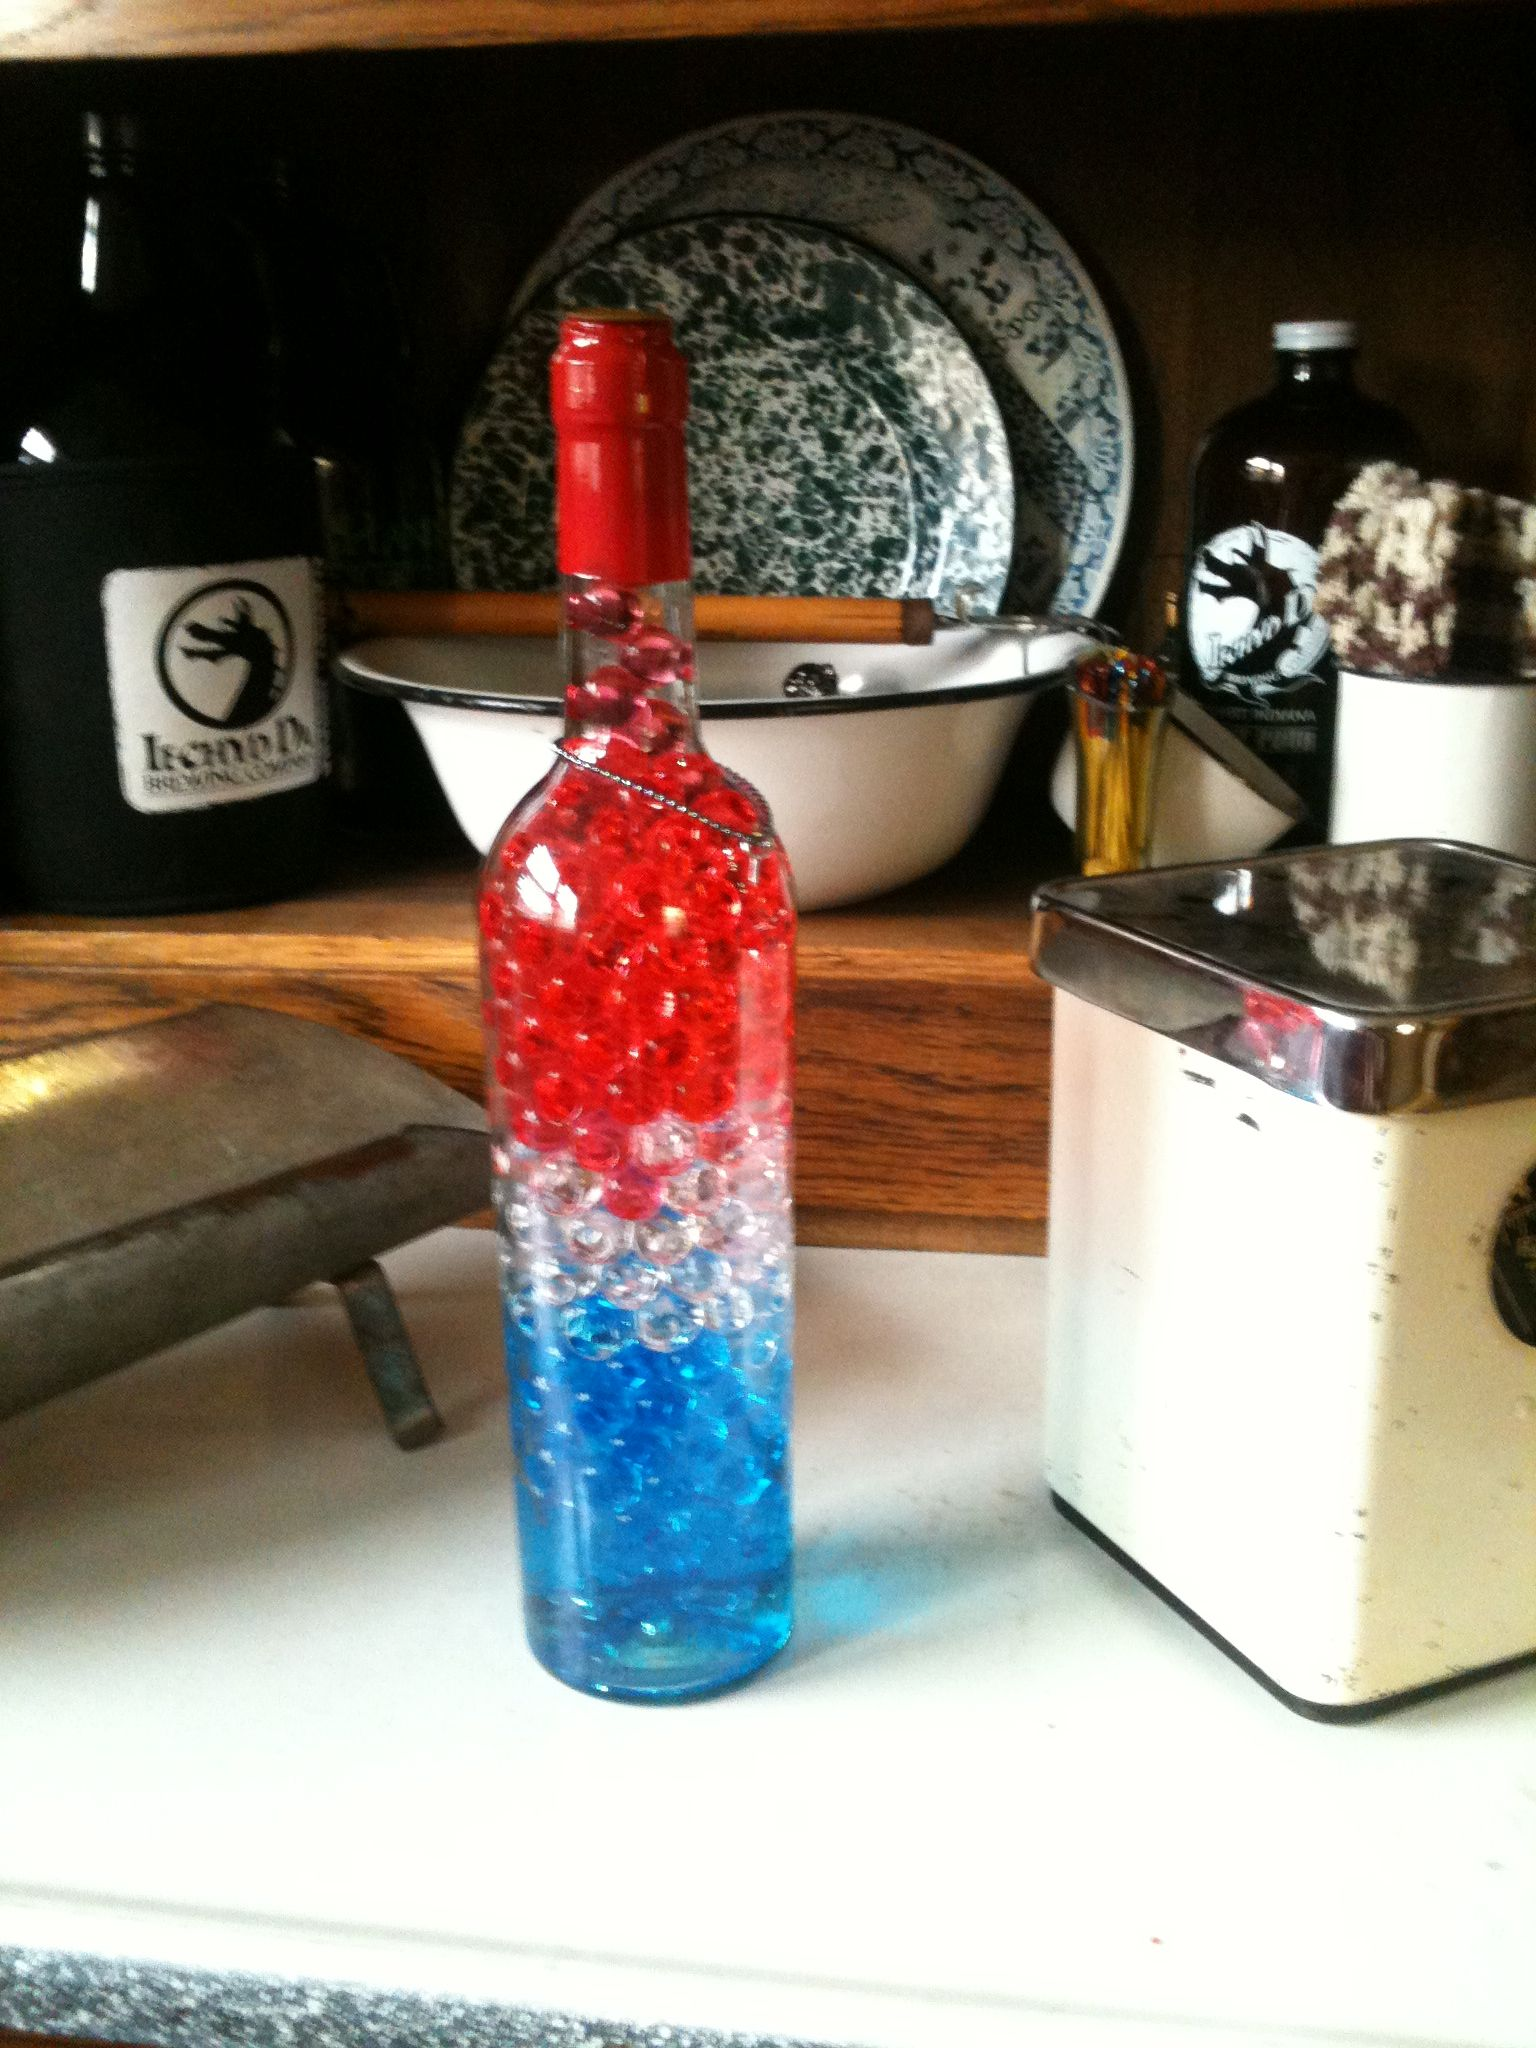 Pin By Ronnie Scott On Thing I Made With Wine Bottles Alcohol Bottles Liquor Bottle Crafts Wine Bottle Crafts Blue Wine Bottles